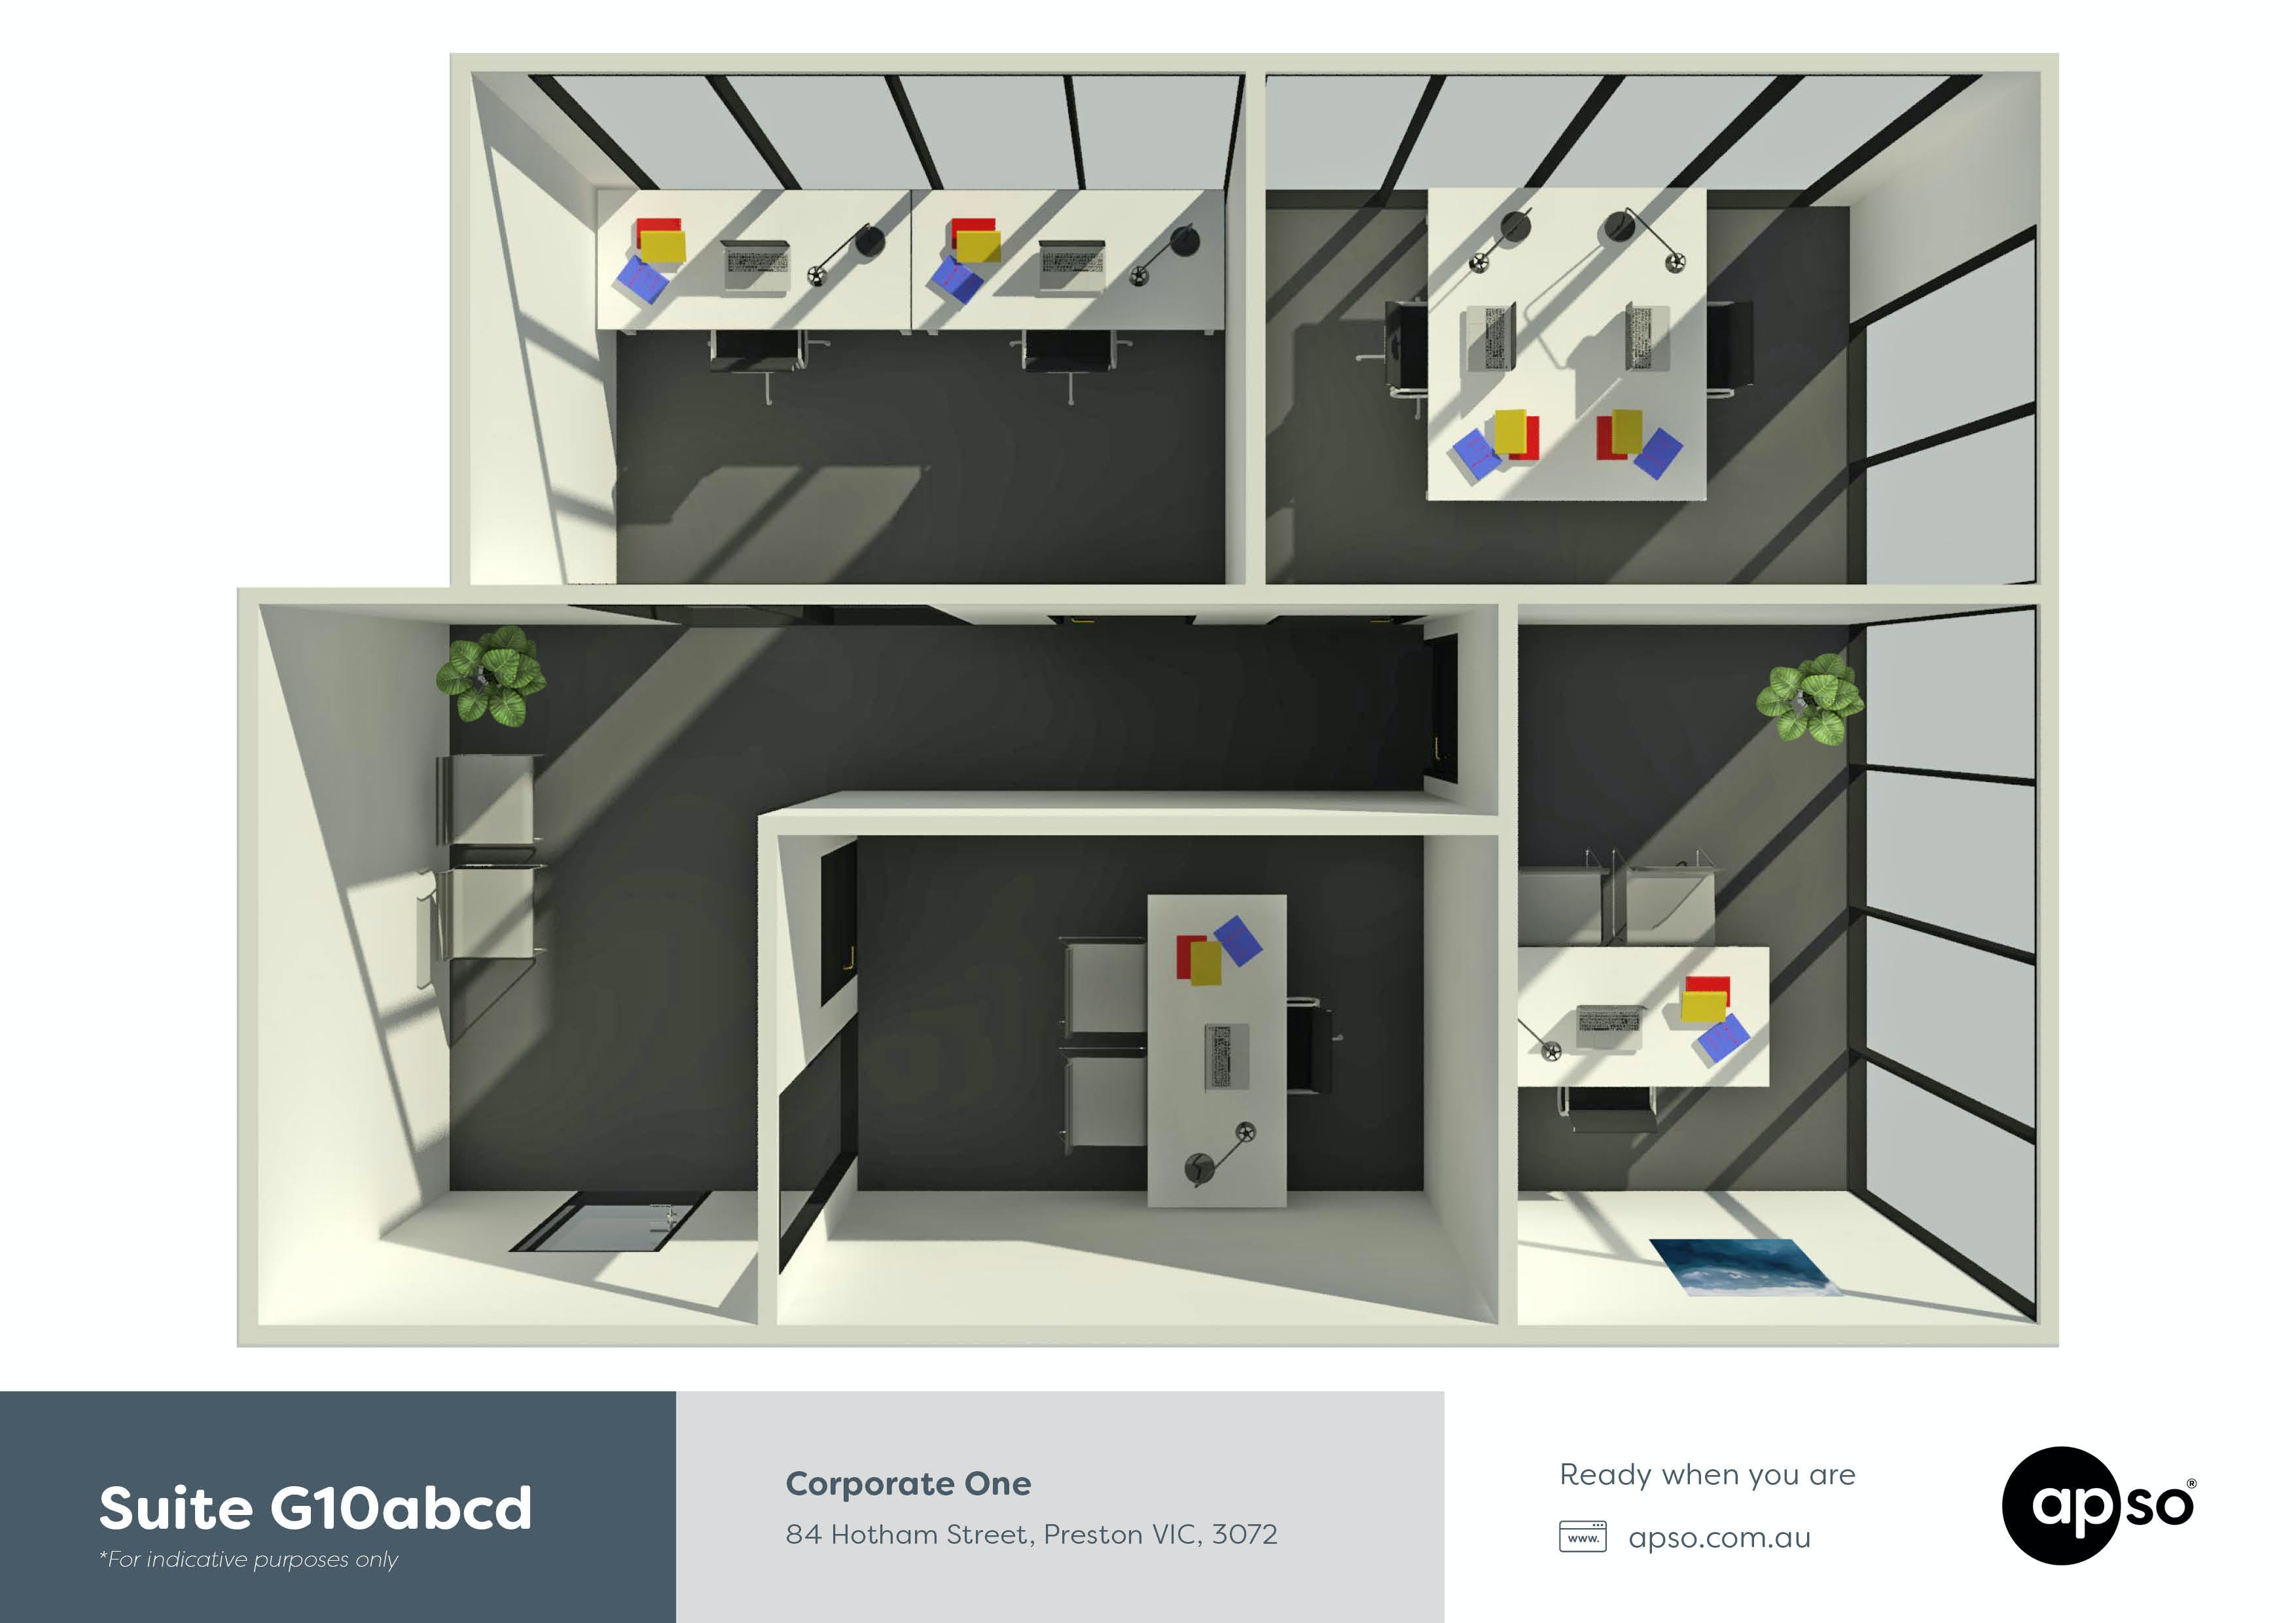 Suite G10abcd, private office at Corporate One, image 12